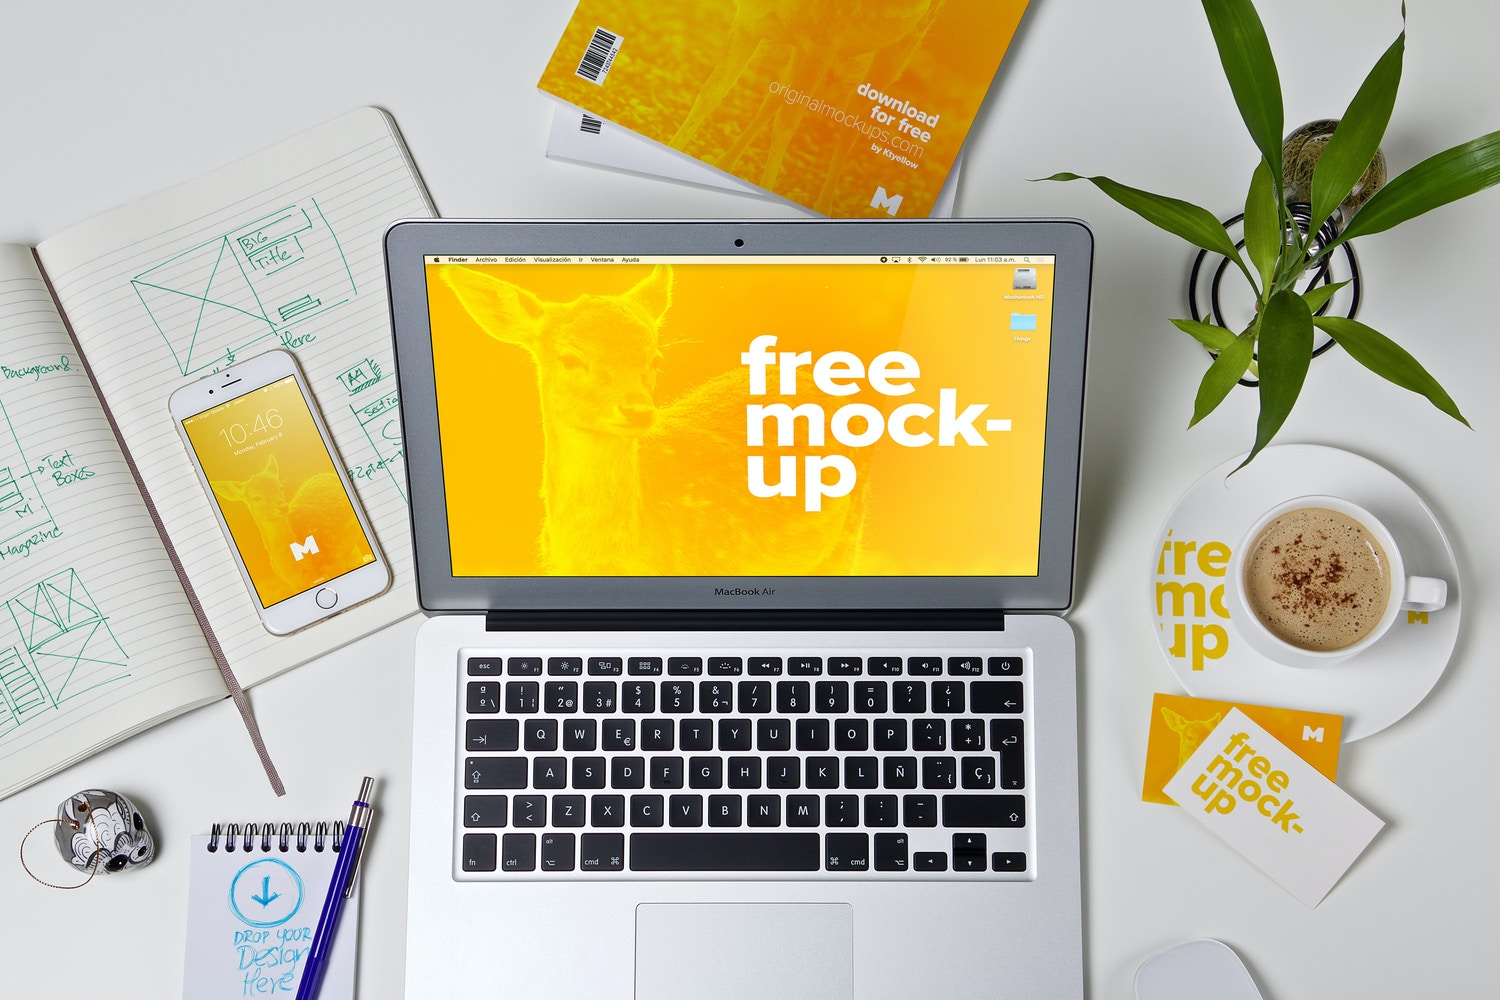 Workspace Mockup 01 by Ktyellow  on Original Mockups